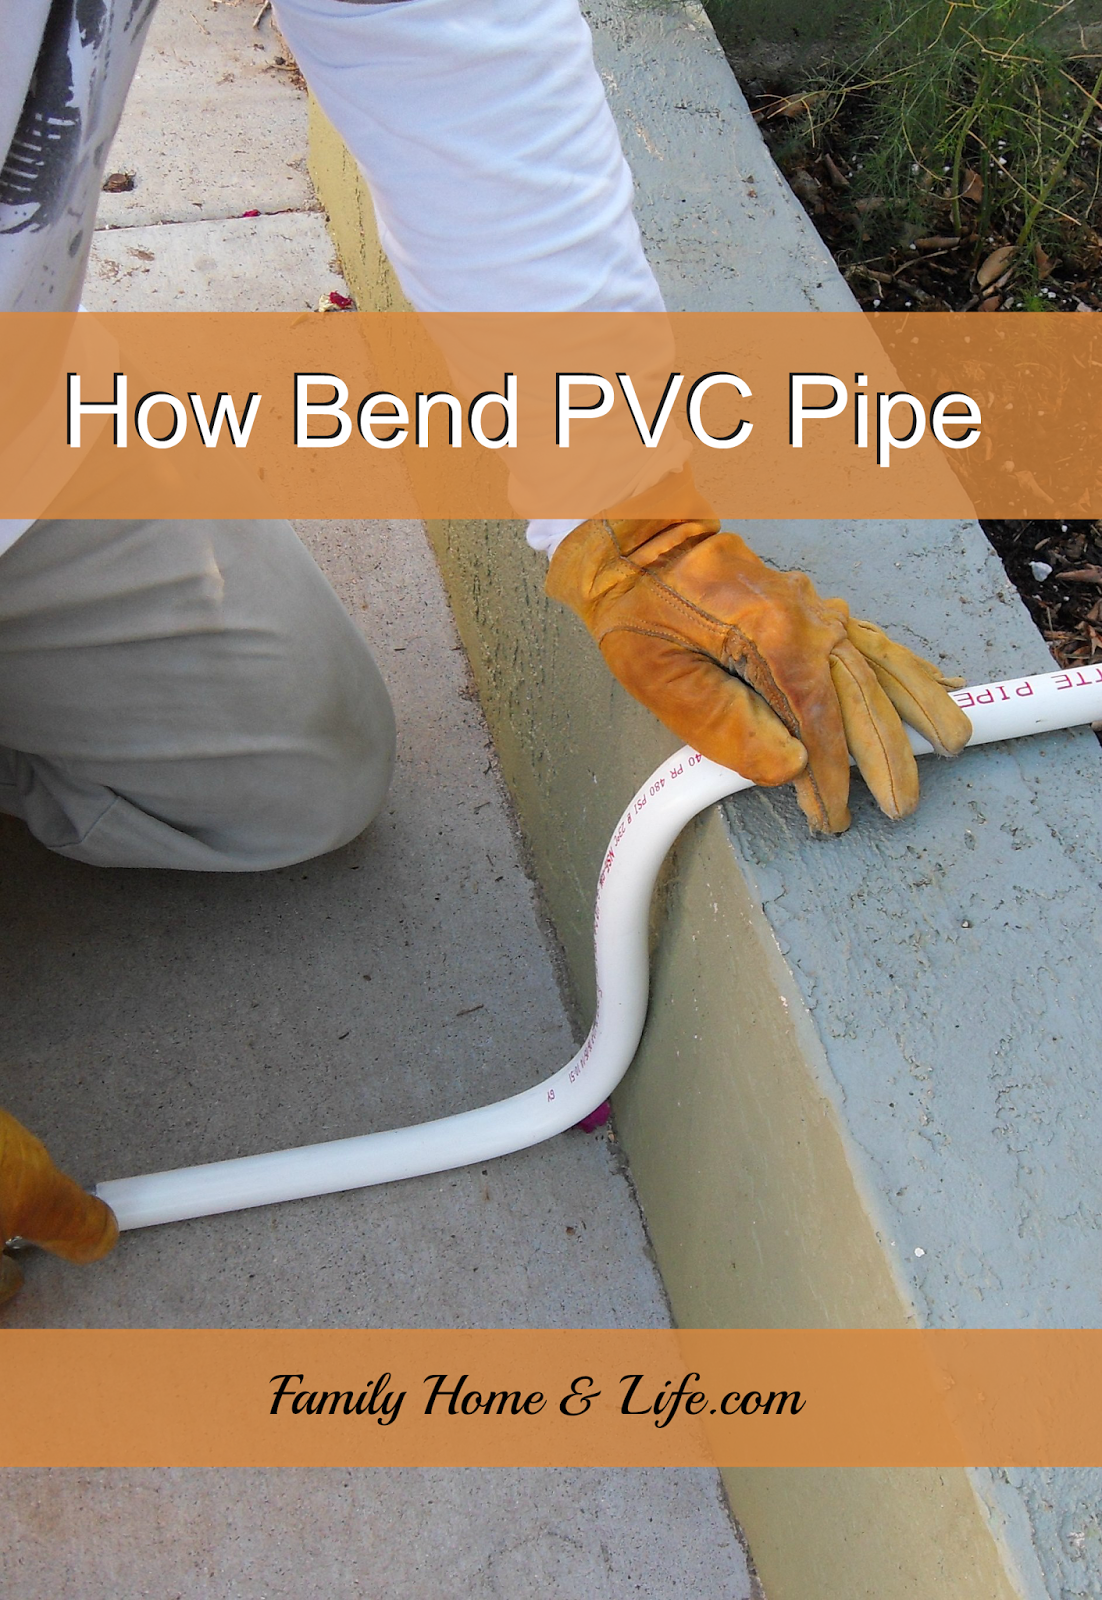 Learn How To Bend PVC Pipe The Easy Way DIY Home Improvement - Diy pvc pipe projects home